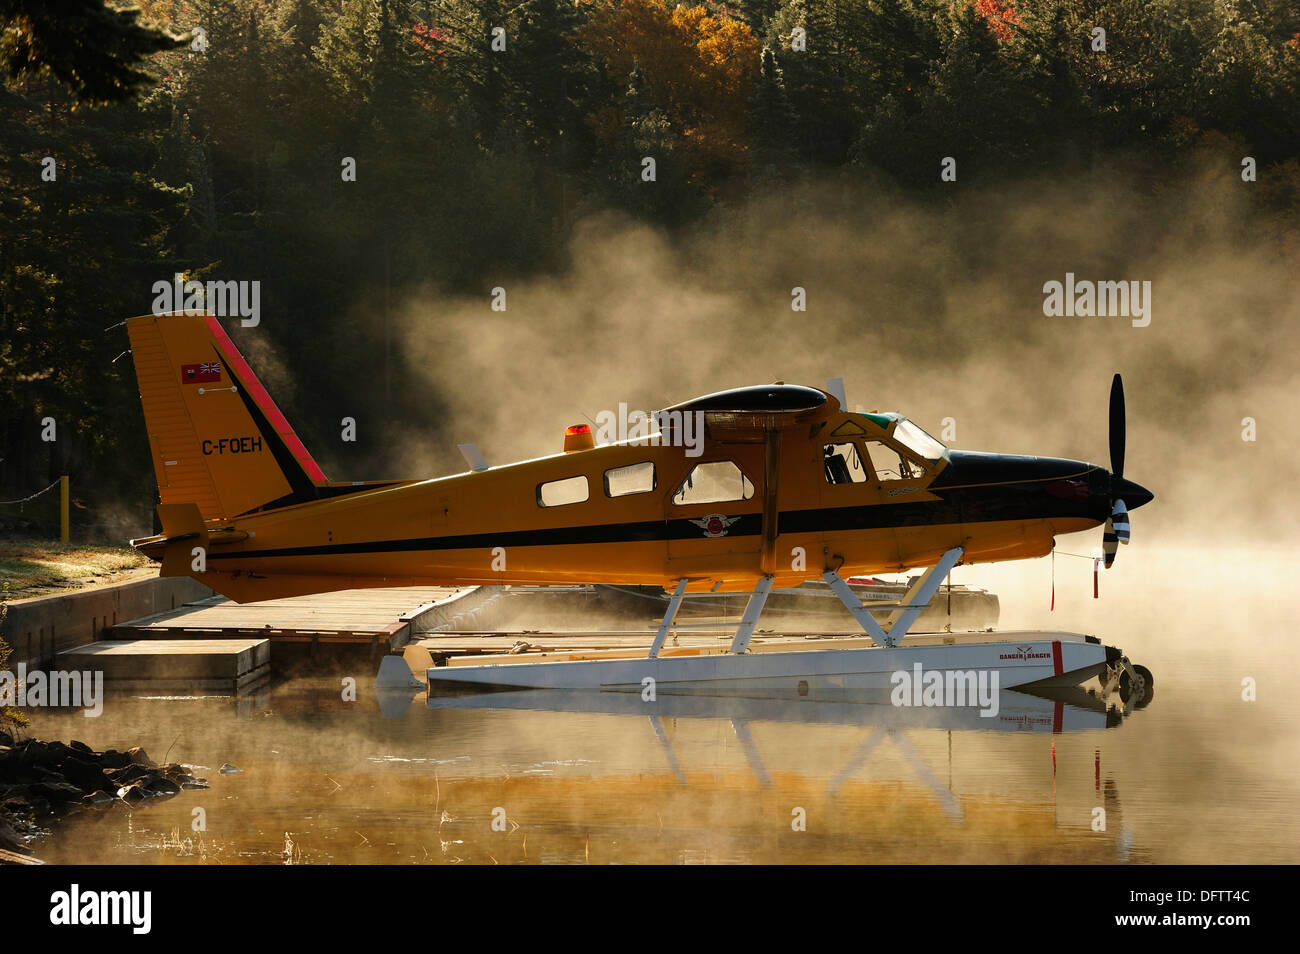 Seaplane on Smoke Lake in the morning mist, Algonquin Provincial Park, Ontario Province, Canada - Stock Image